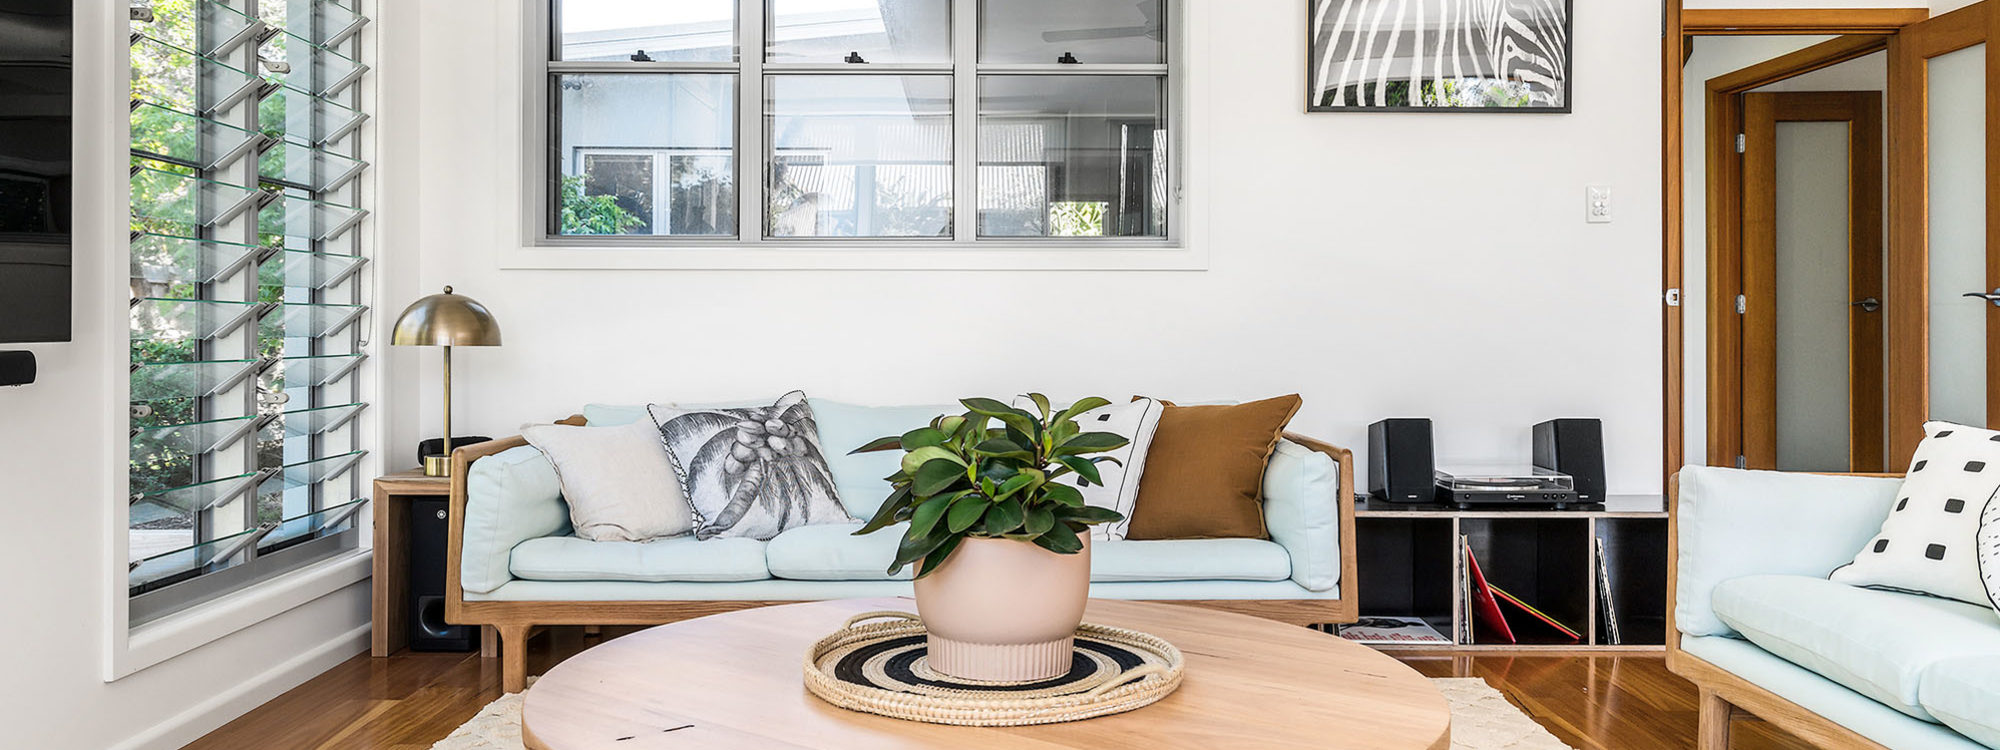 Shore Beats Work - Byron Bay - Living Room e